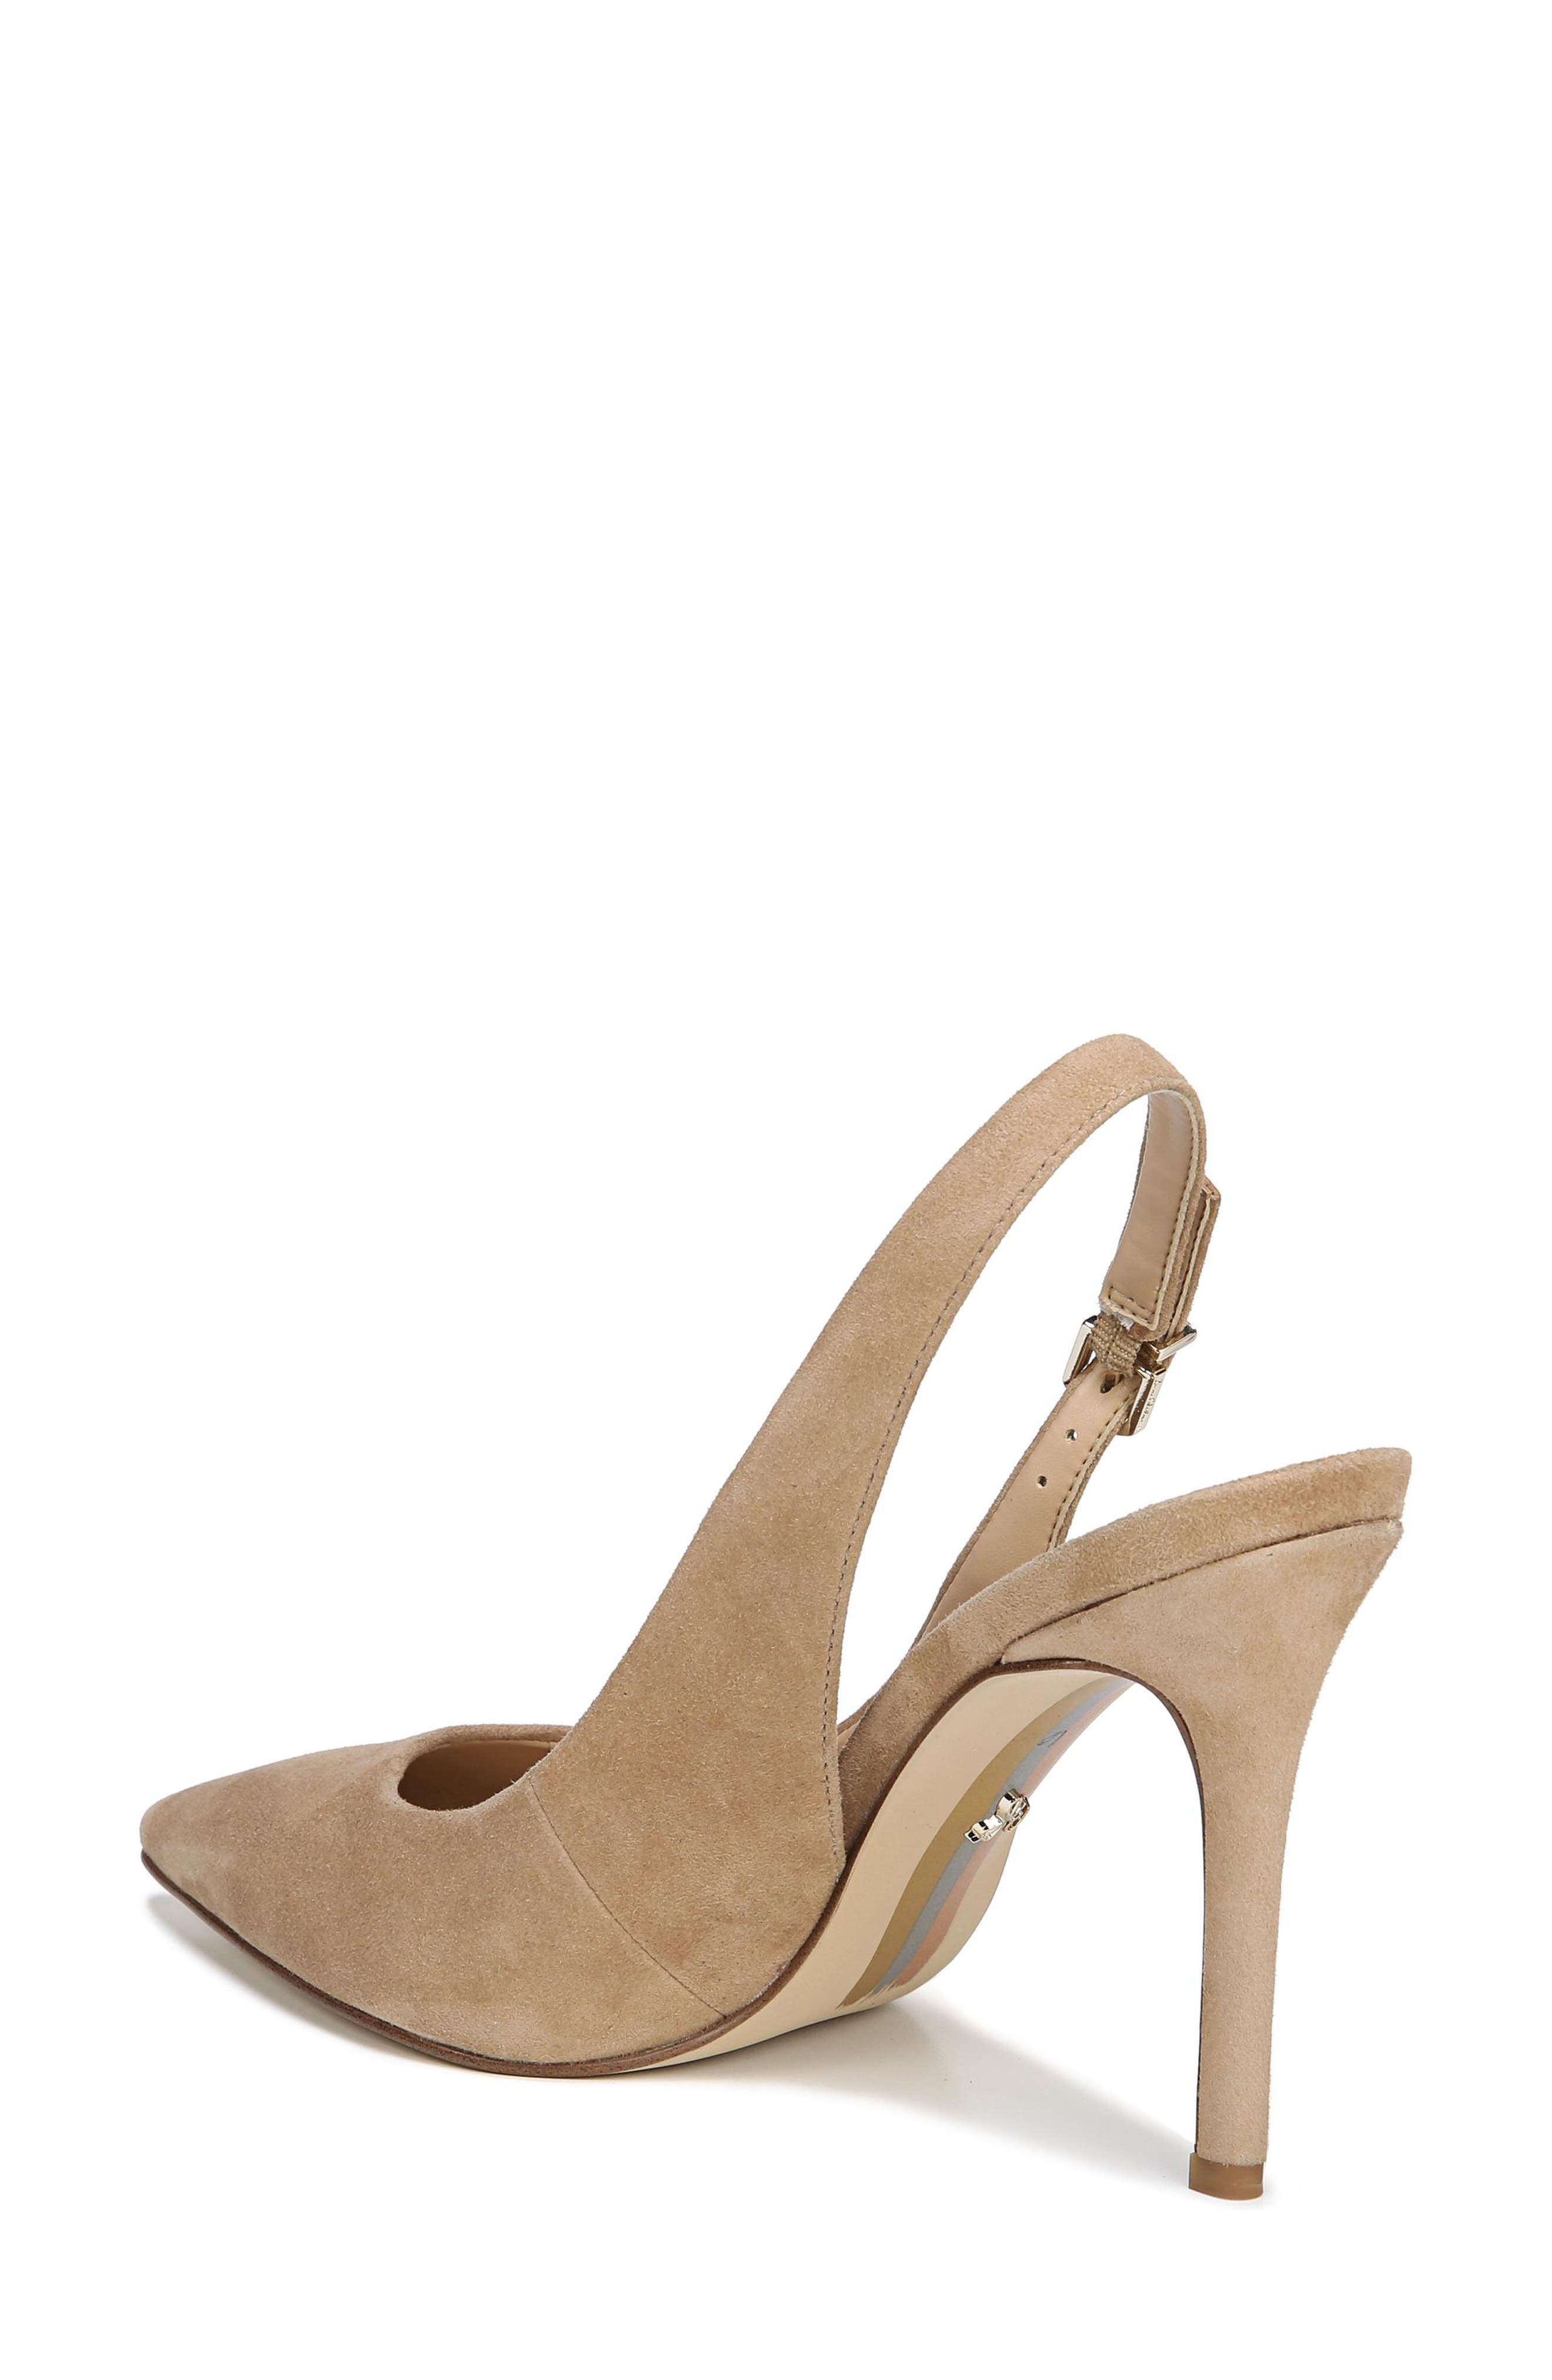 Hastings Slingback Pump,                             Alternate thumbnail 2, color,                             OATMEAL SUEDE LEATHER